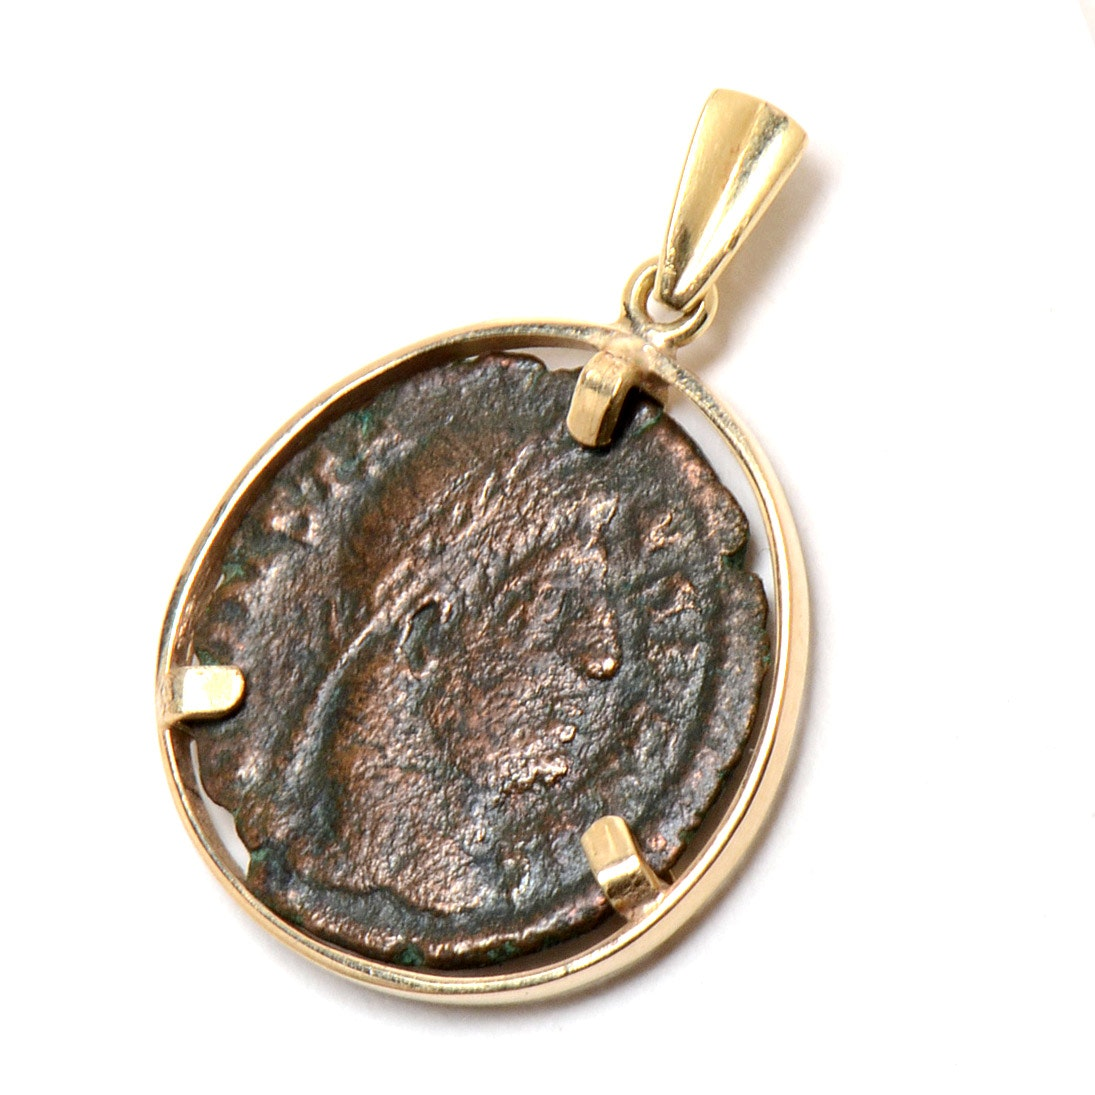 14K Yellow Gold Pendant Set With Ancient Roman Imperial Coin